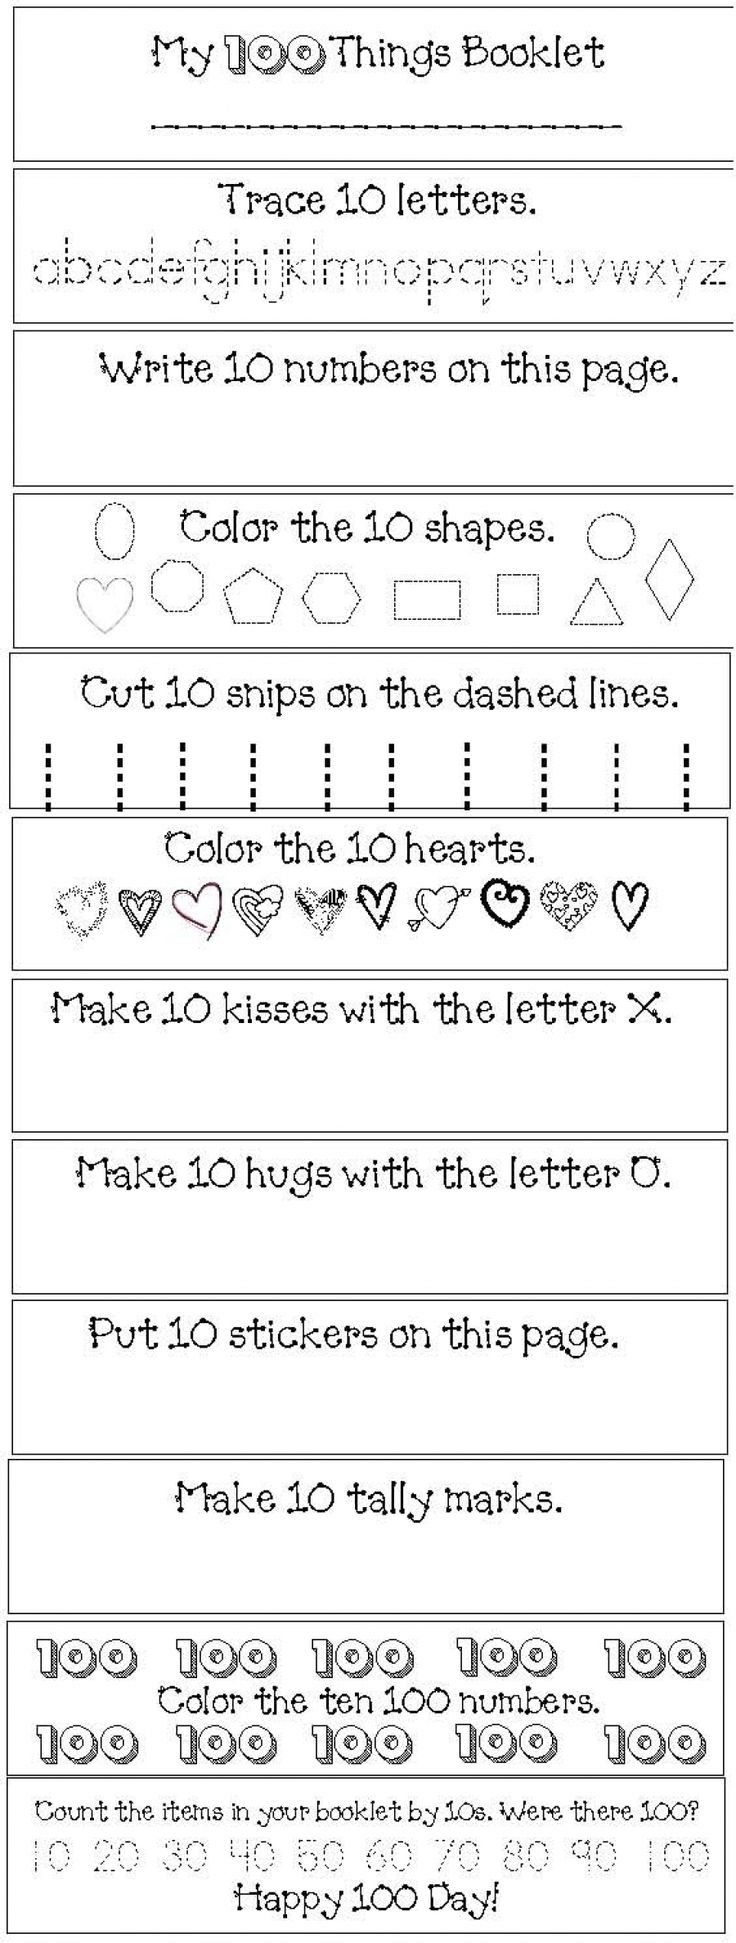 Worksheets 100th Day Of School Worksheets 81 best 100th day of school images on pinterest my 100 flip booklet schoolflip